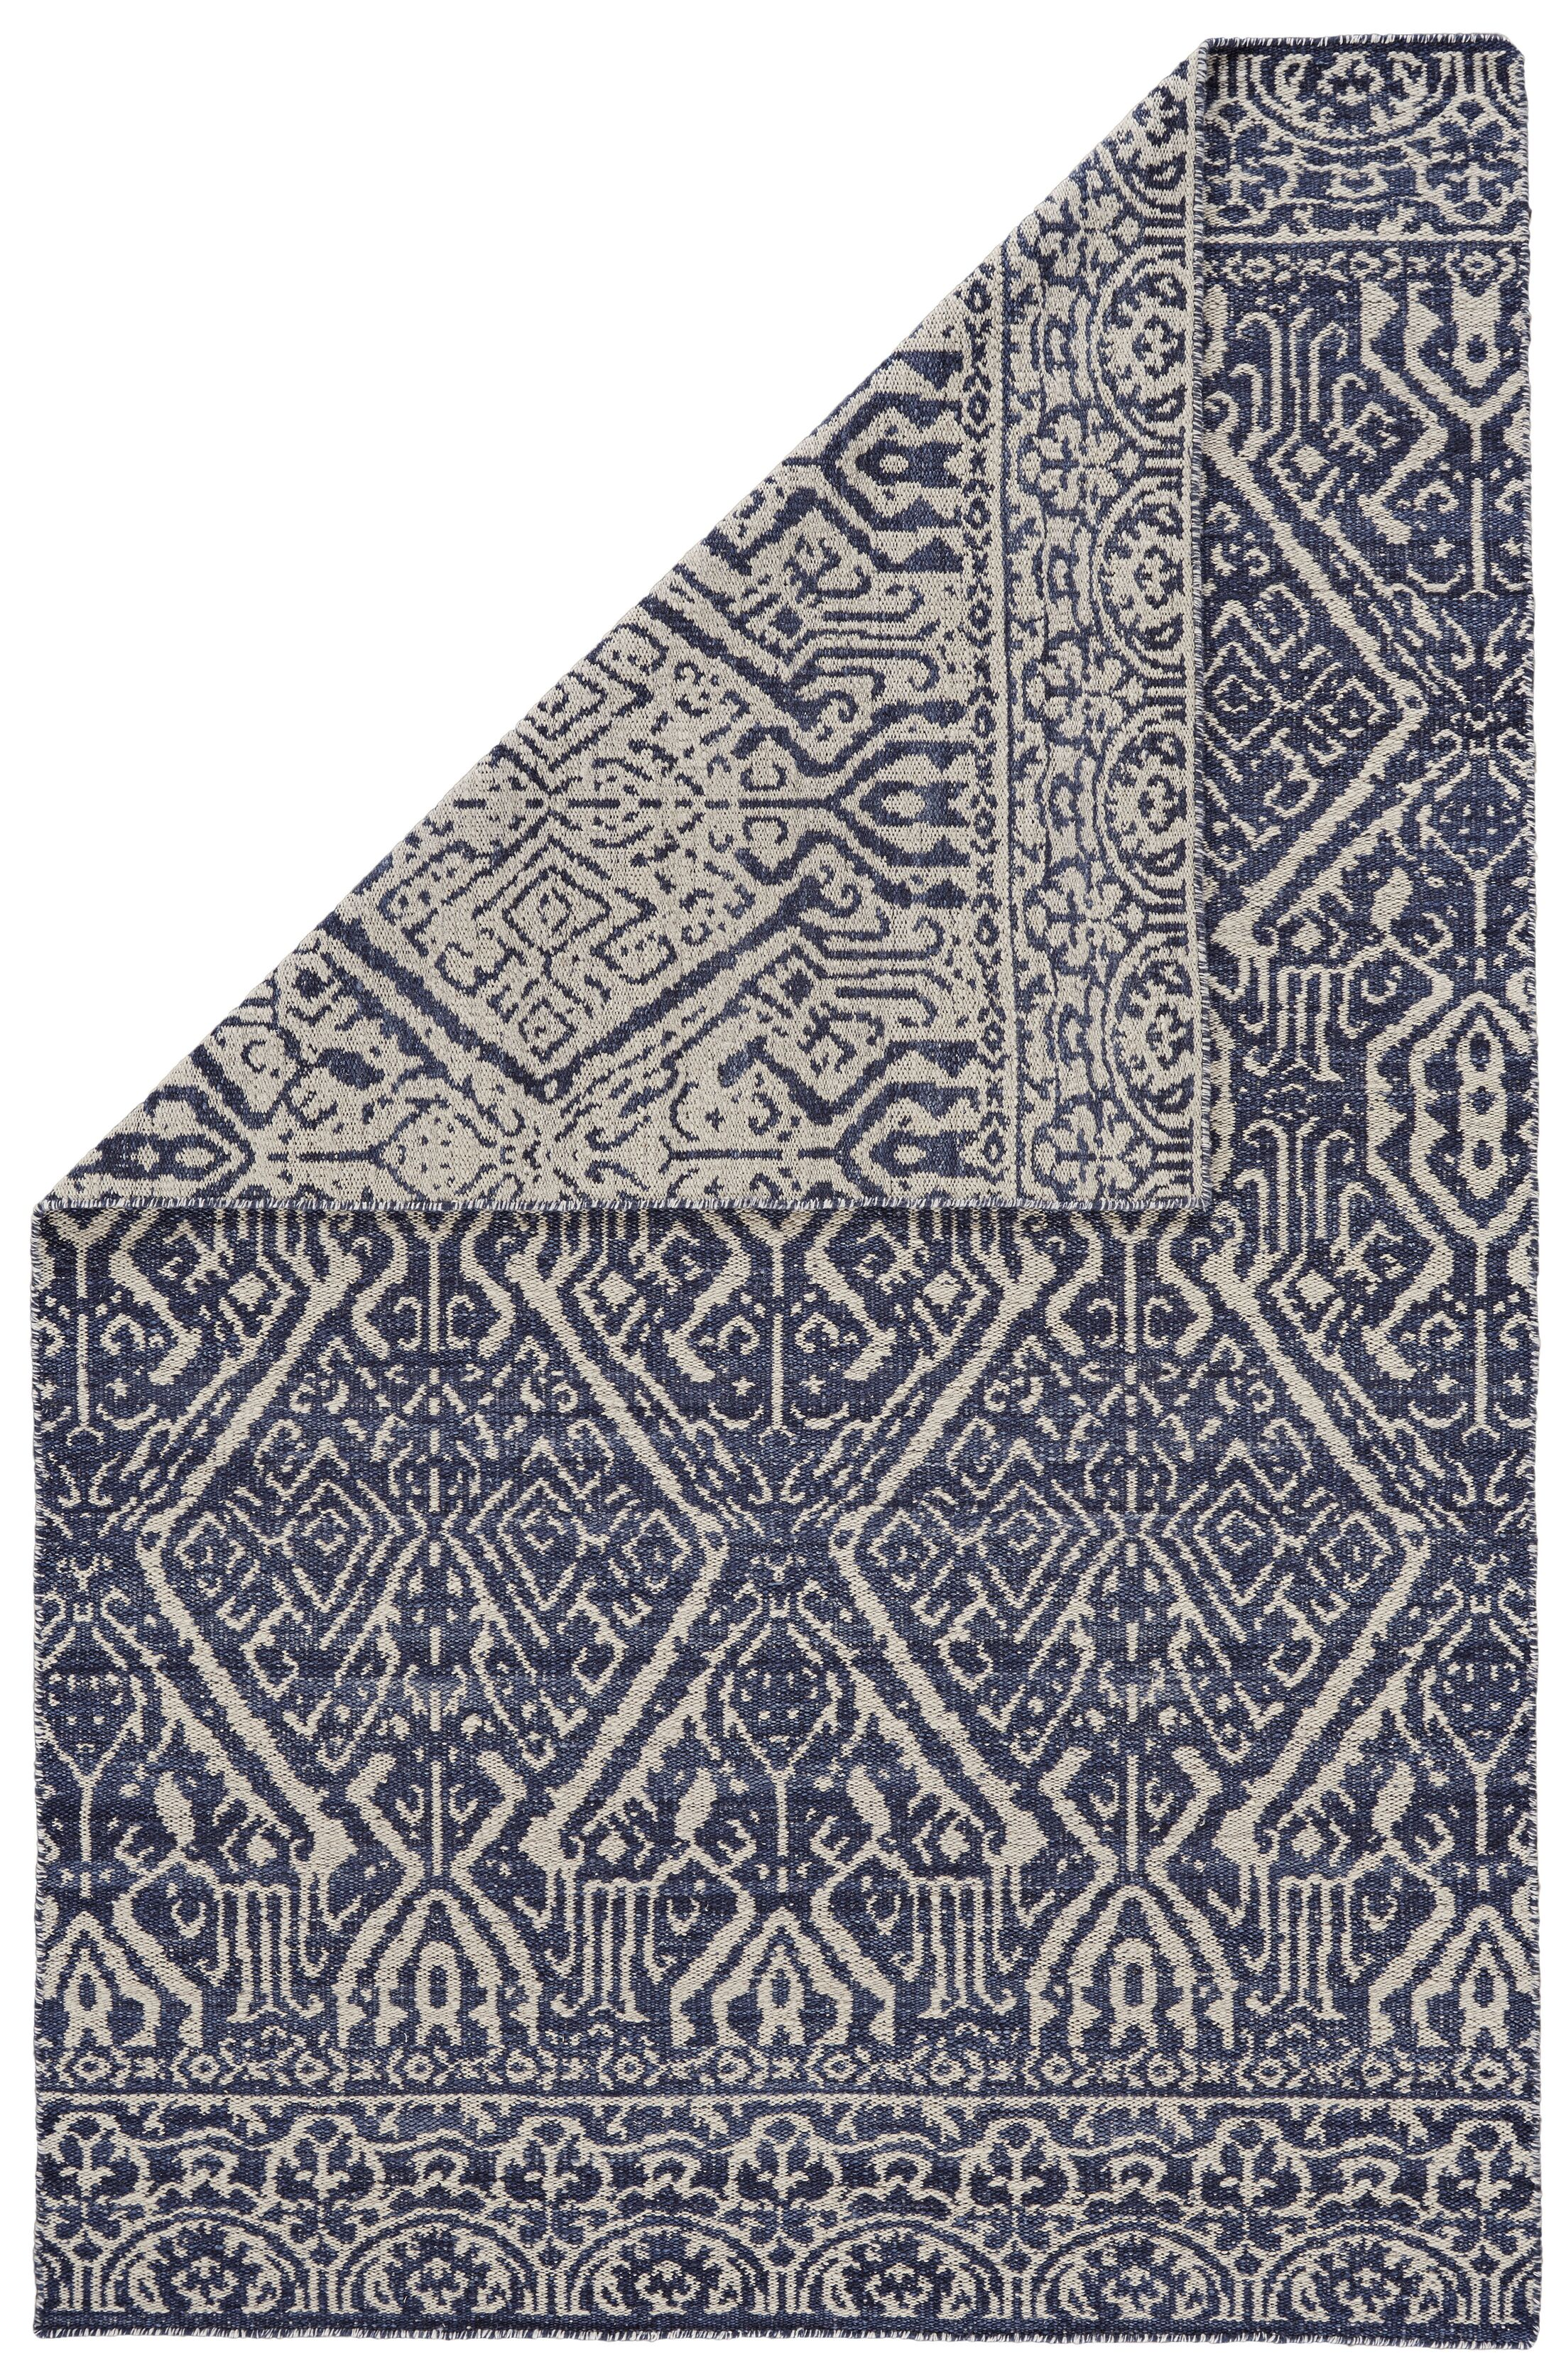 Reiber Hand-Woven Wool Cobalt/White Area Rug Rug Size: Rectangle 5' x 8'